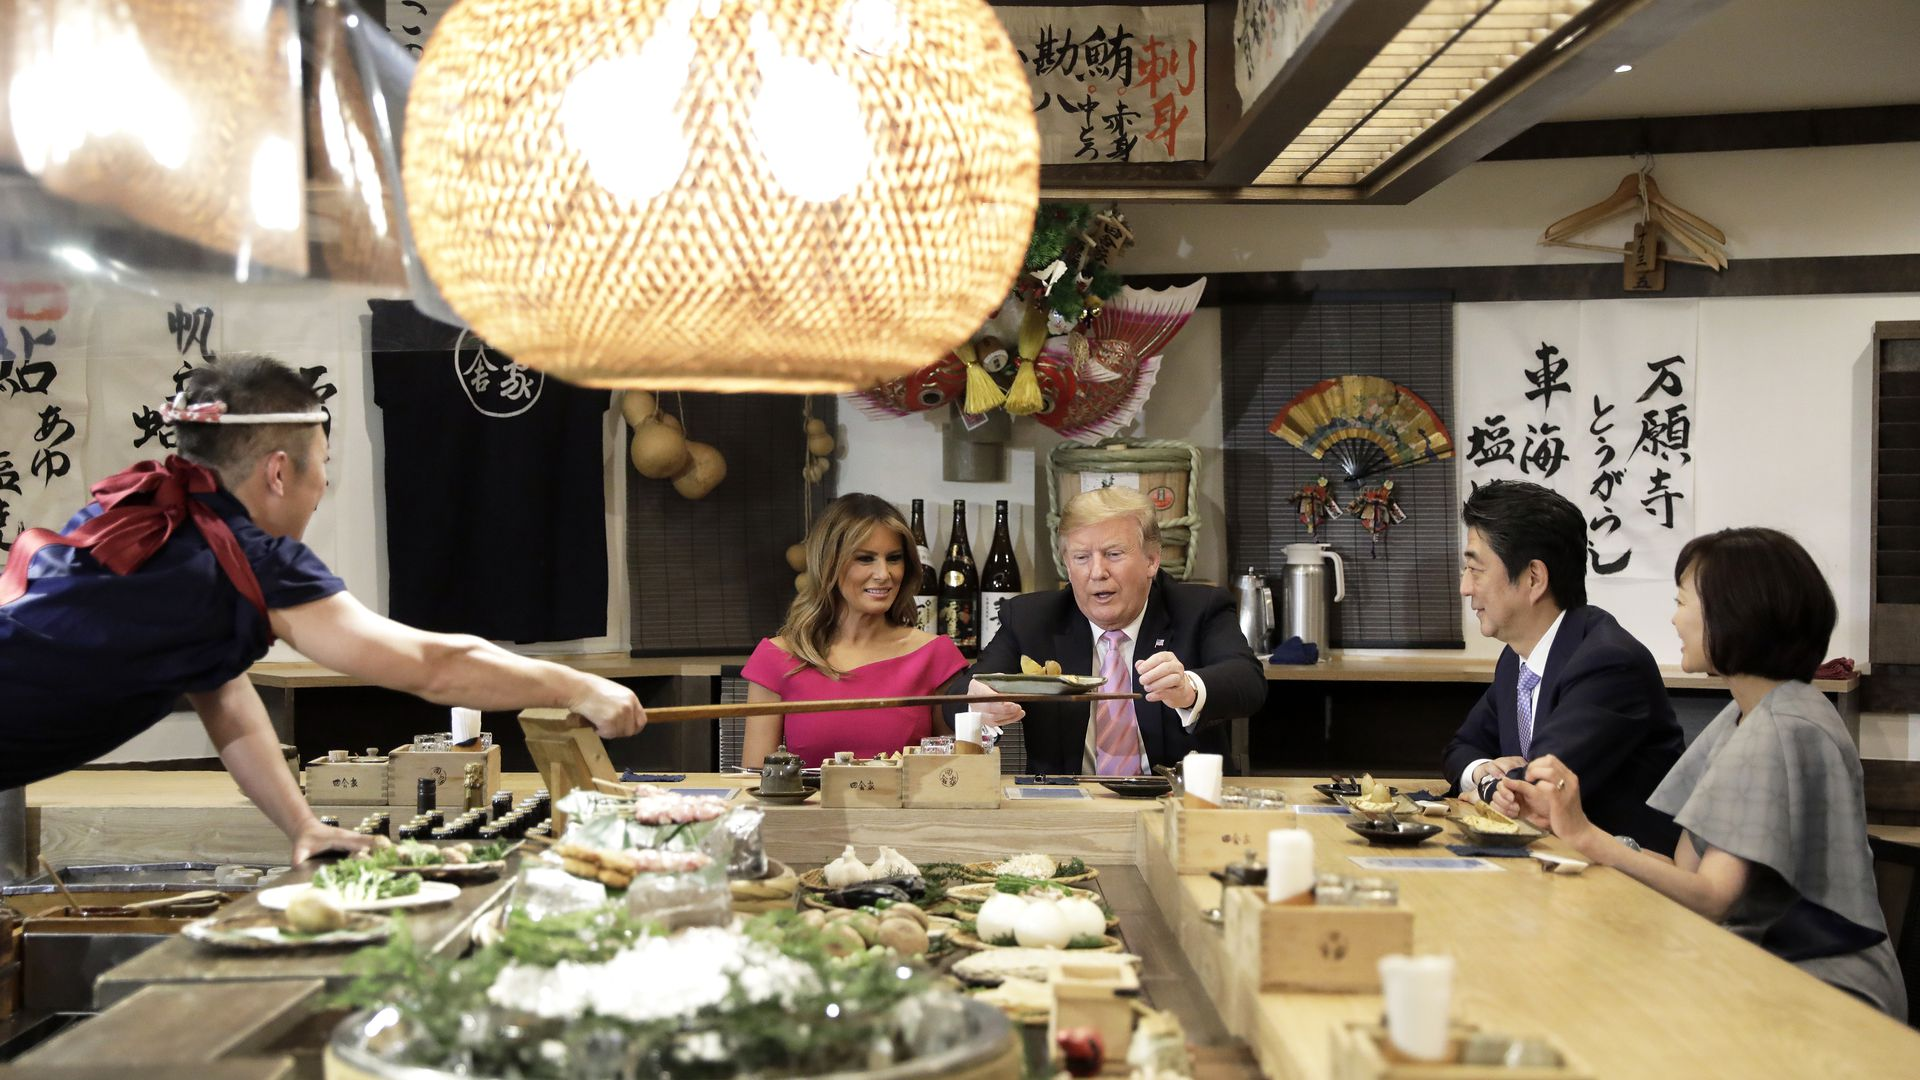 President Trump is served a baked potato with butter in Tokyo, while dining with Melania Trump, Prime Minister Shinzo Abe and his wife, Akie Abe. (Photo: Kiyoshi Ota/Pool/Getty)